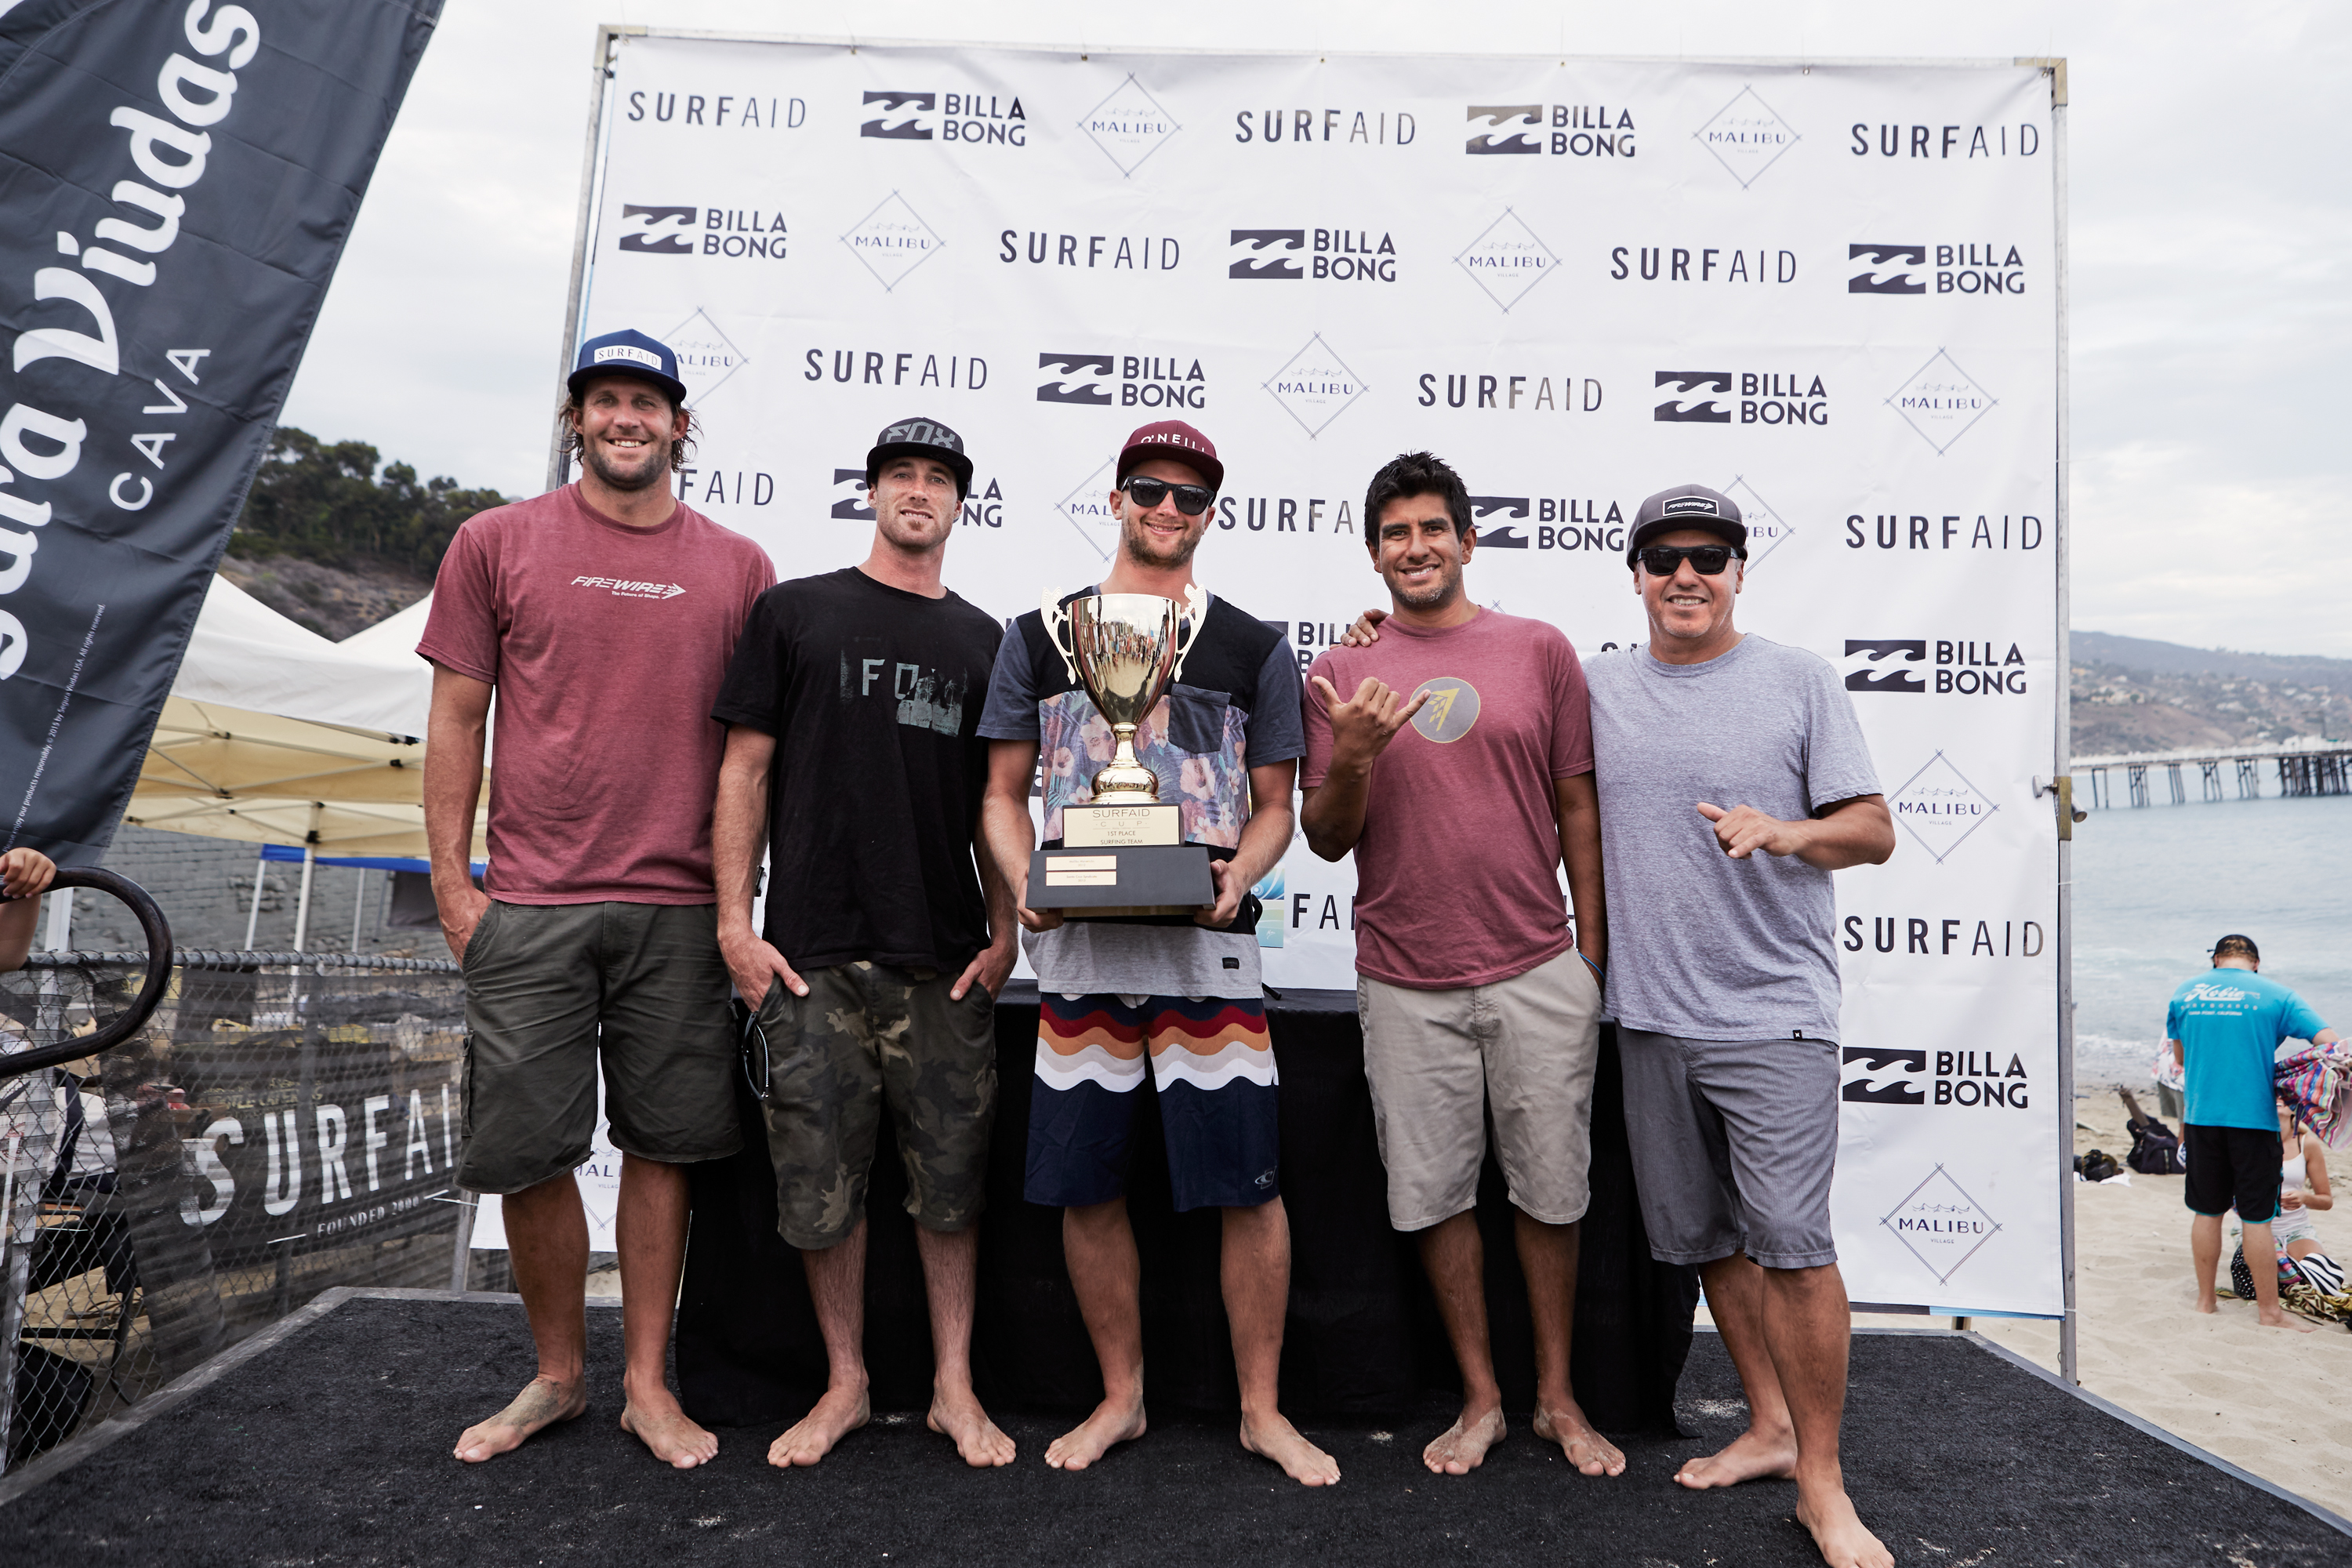 Billabong SurfAid Cup winners